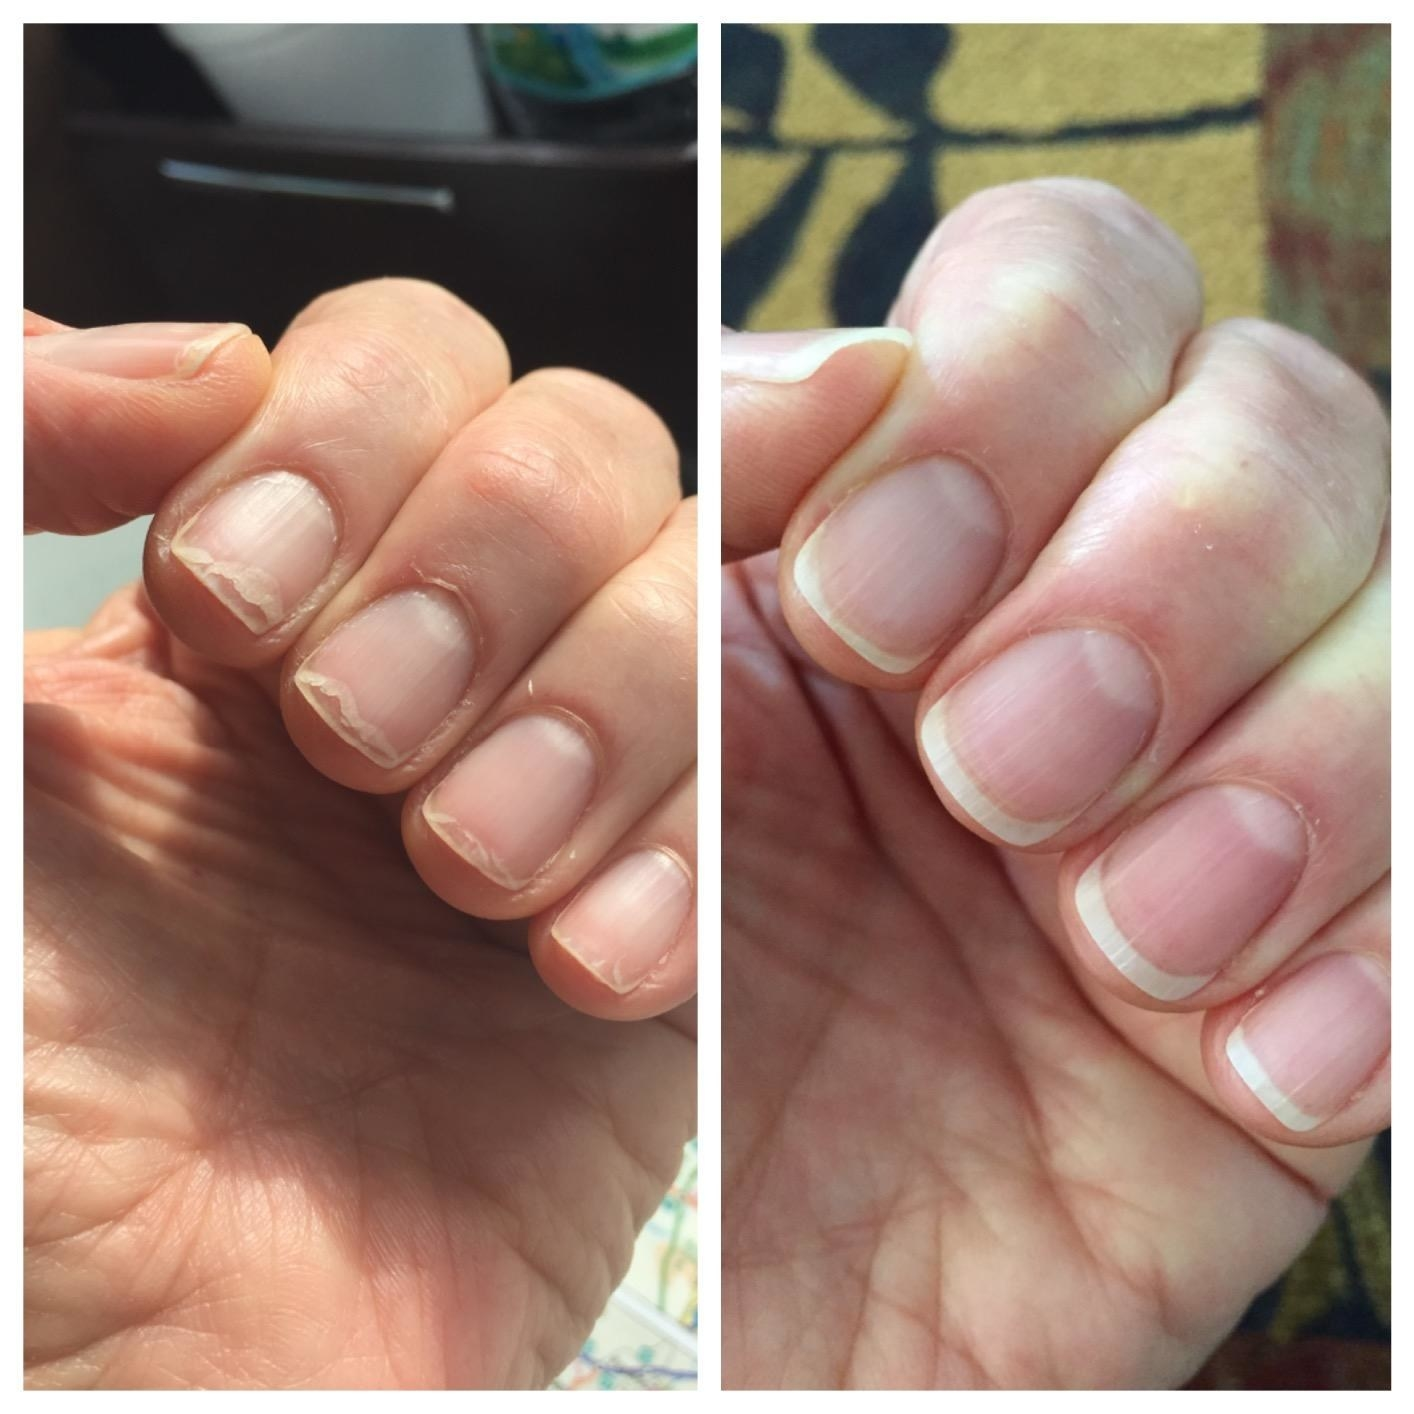 Before and after showing the cuticle oil made the reviewer's shredded nails stronger and made the cuticles look neater